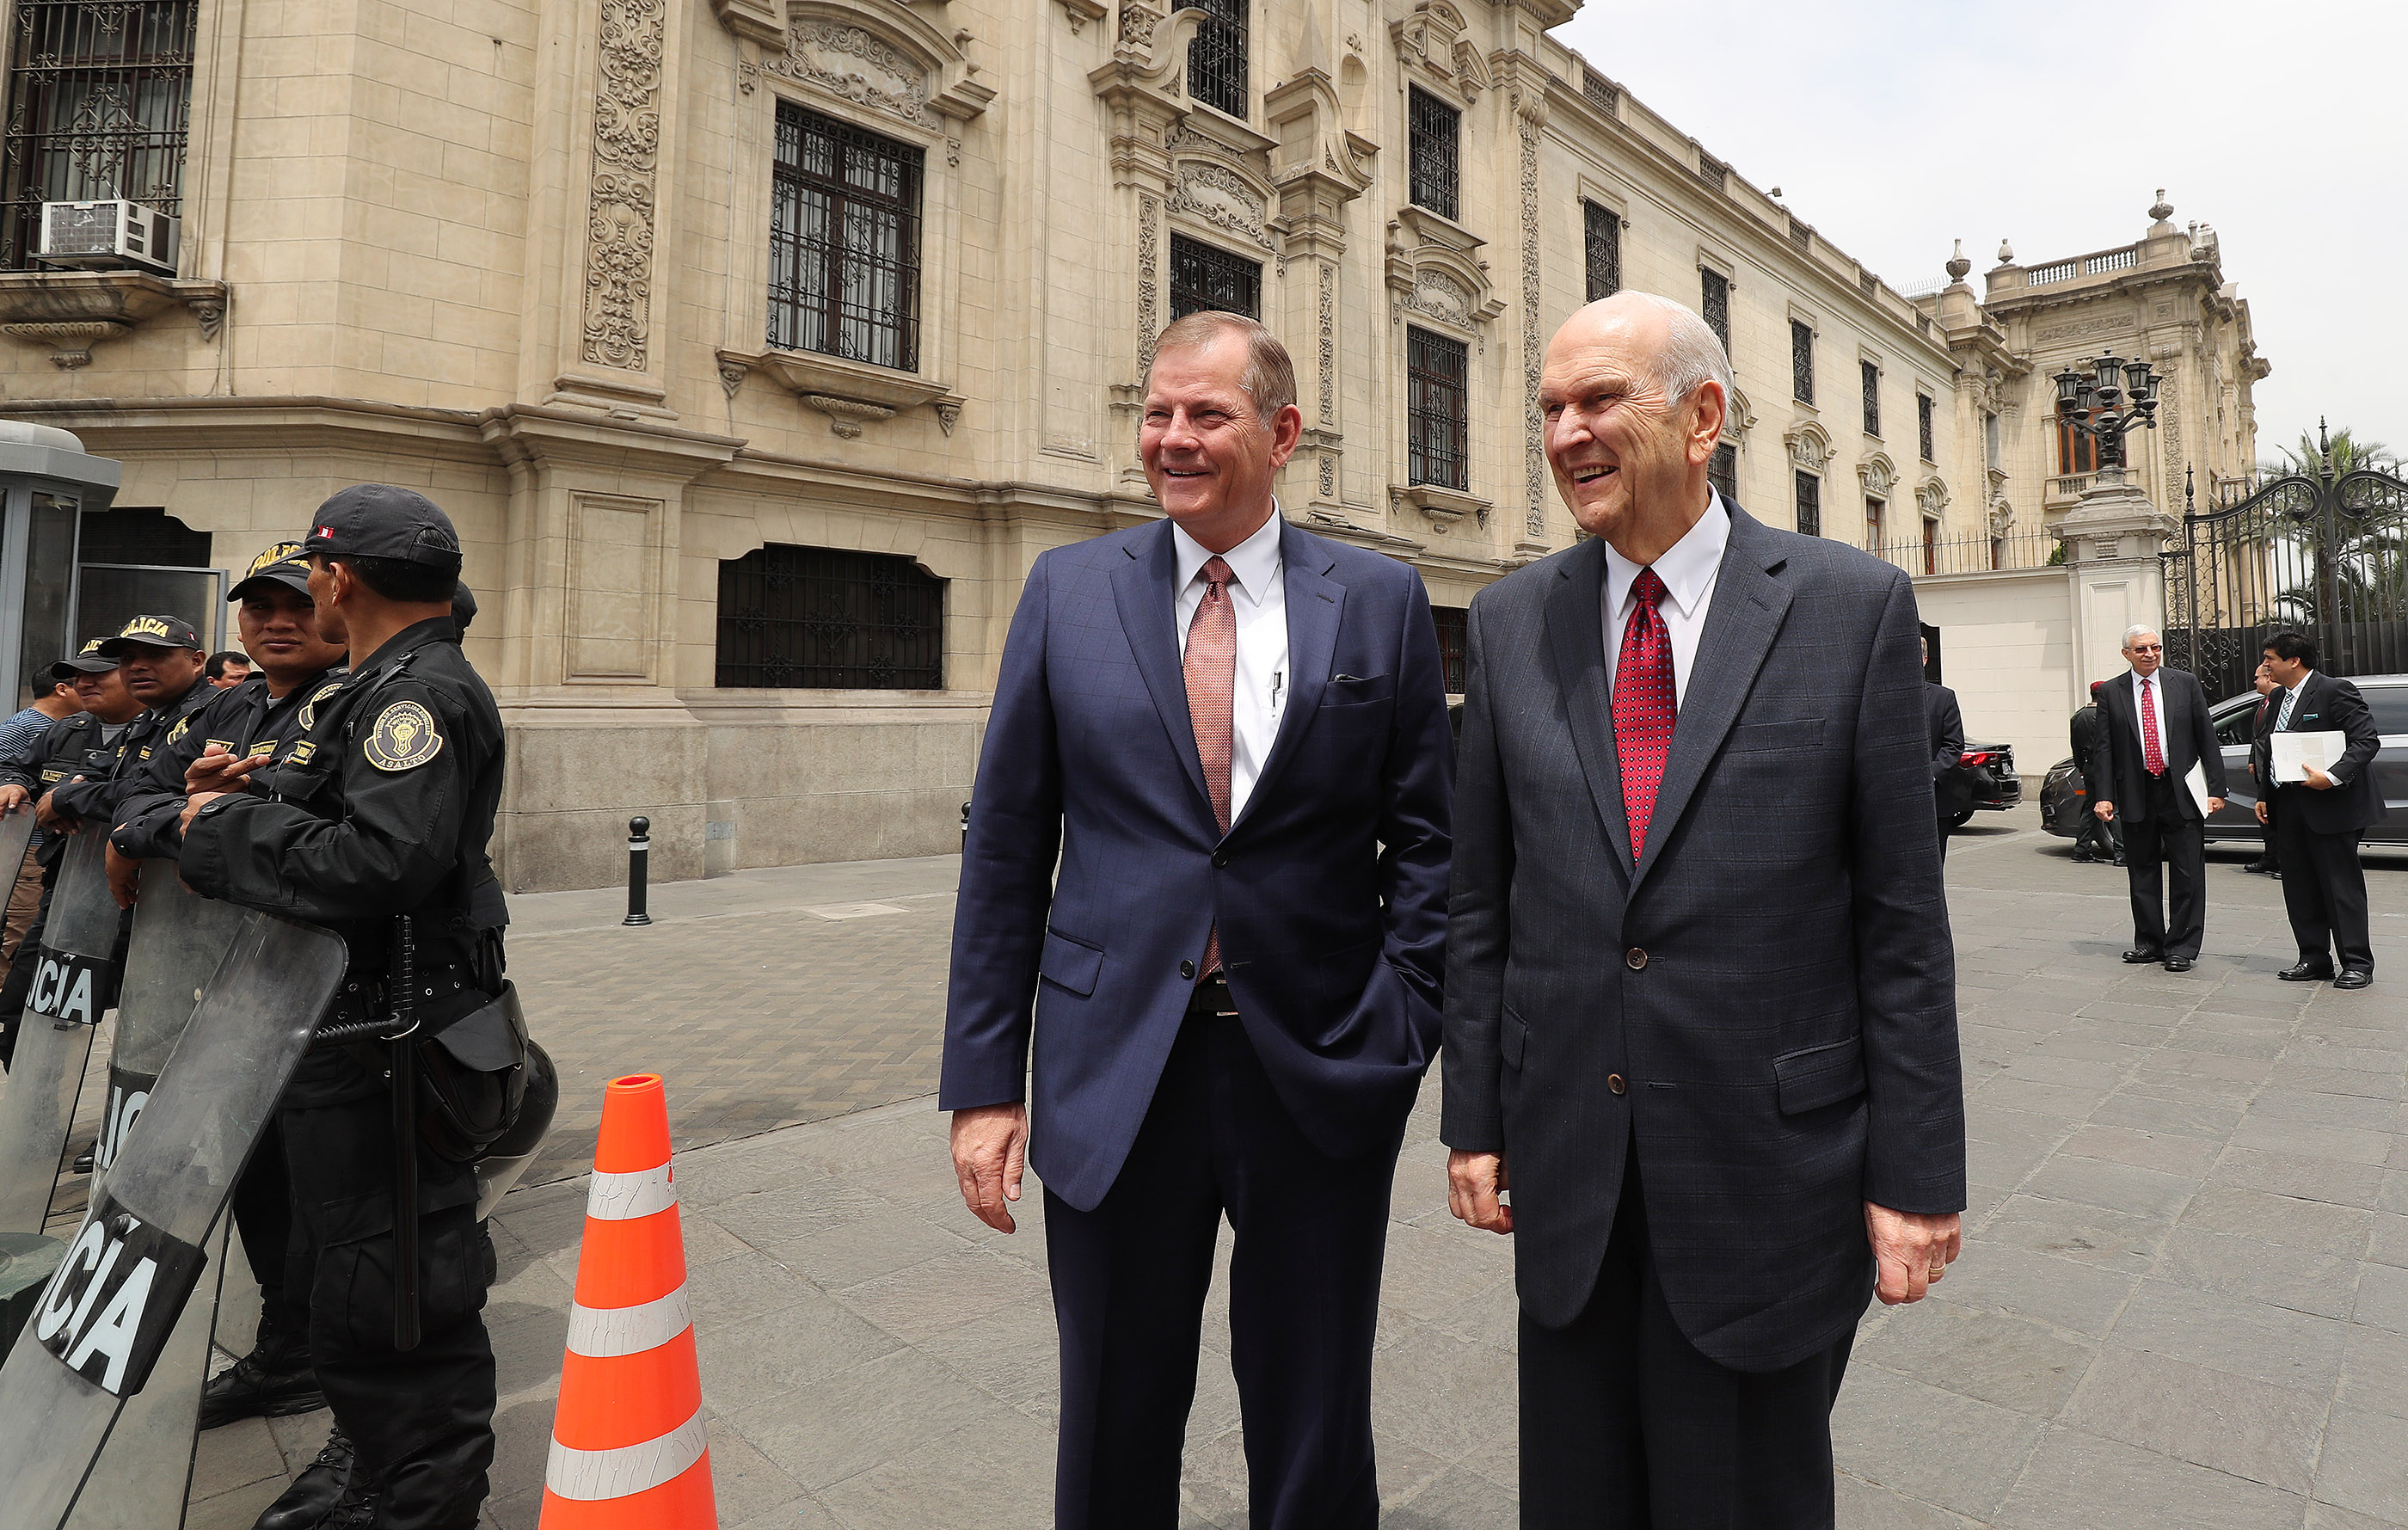 President Russell M. Nelson of The Church of Jesus Christ of Latter-day Saints, right, and Elder Gary E. Stevenson of the Quorum of the Twelve Apostles arrive at the Government Palace to speak with the president of Peru in Lima, Peru, on Oct. 20, 2018.